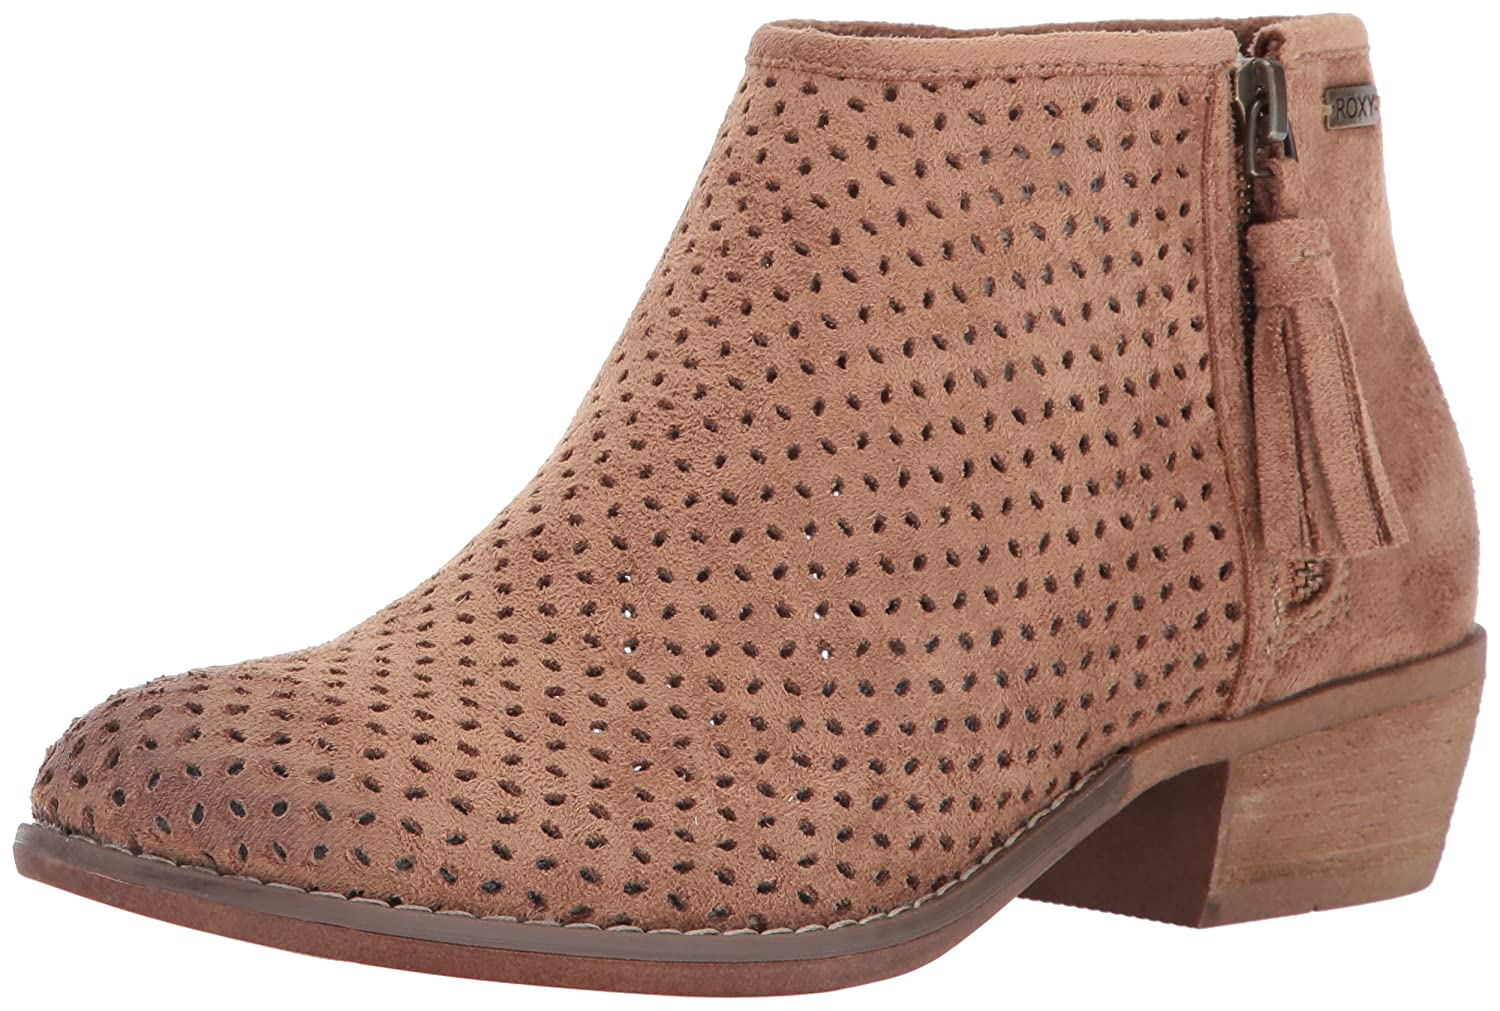 Roxy Women's Fuentes Ankle Bootie B01N49JWGY 8.5 B(M) US|Brown